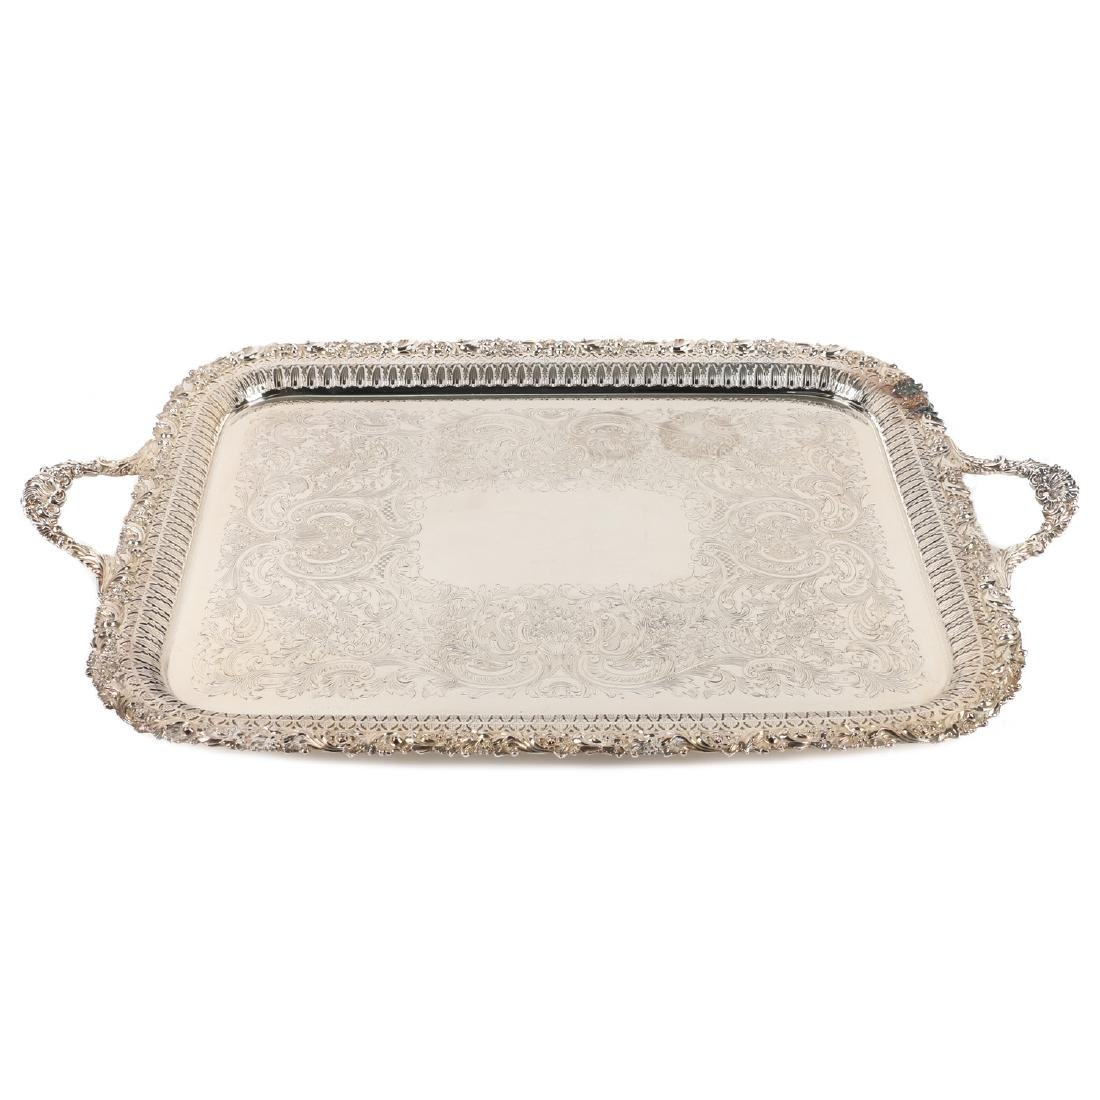 Silverplated Serving Tray